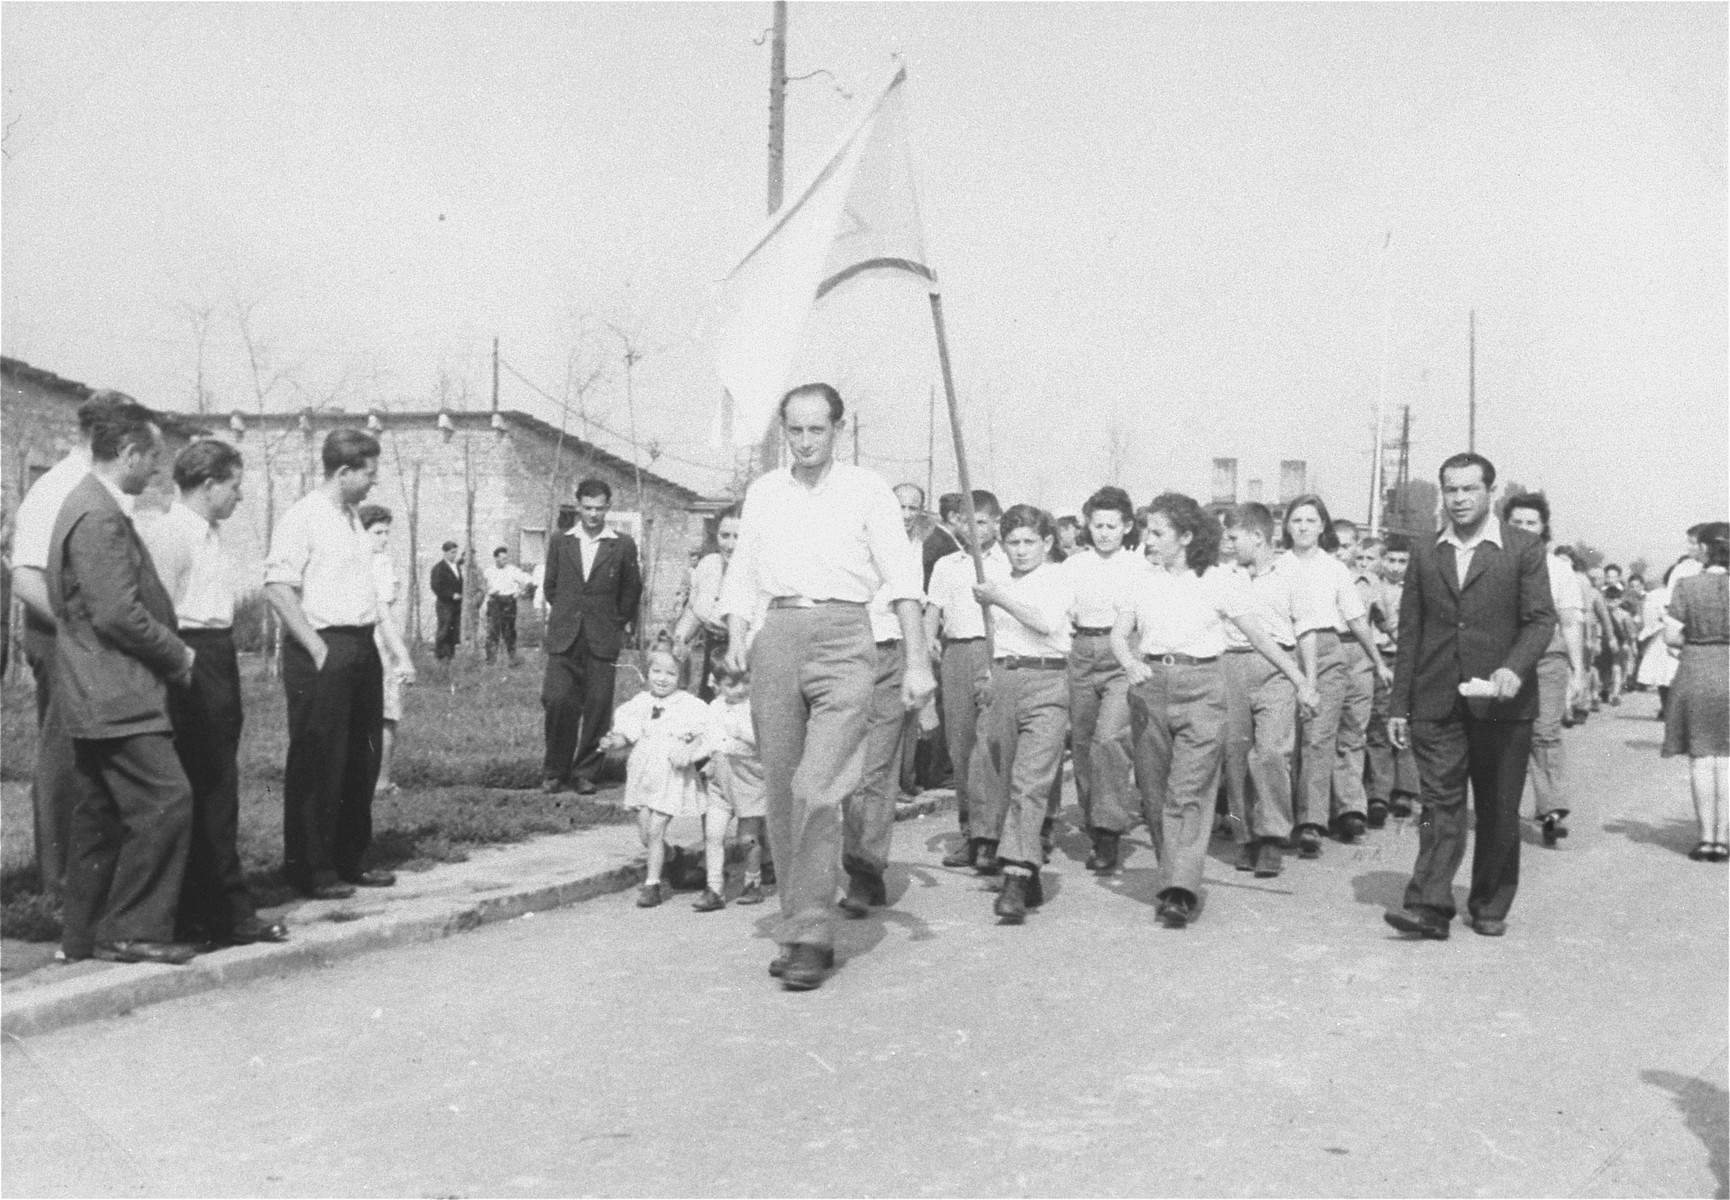 Zionist youth march with flags in a procession at the Zeilsheim displaced persons' camp.